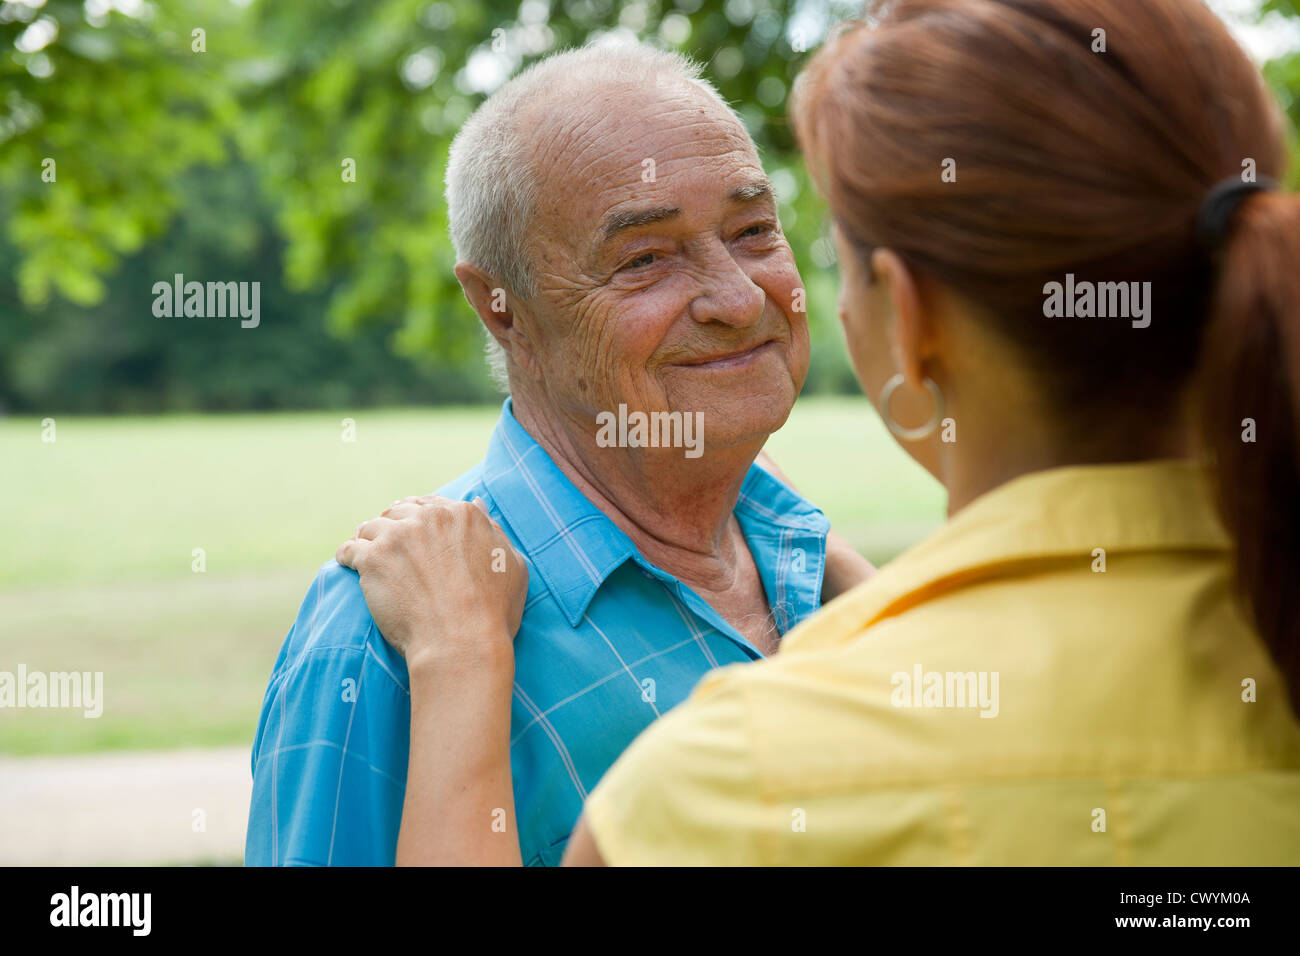 Woman with old man in park - Stock Image